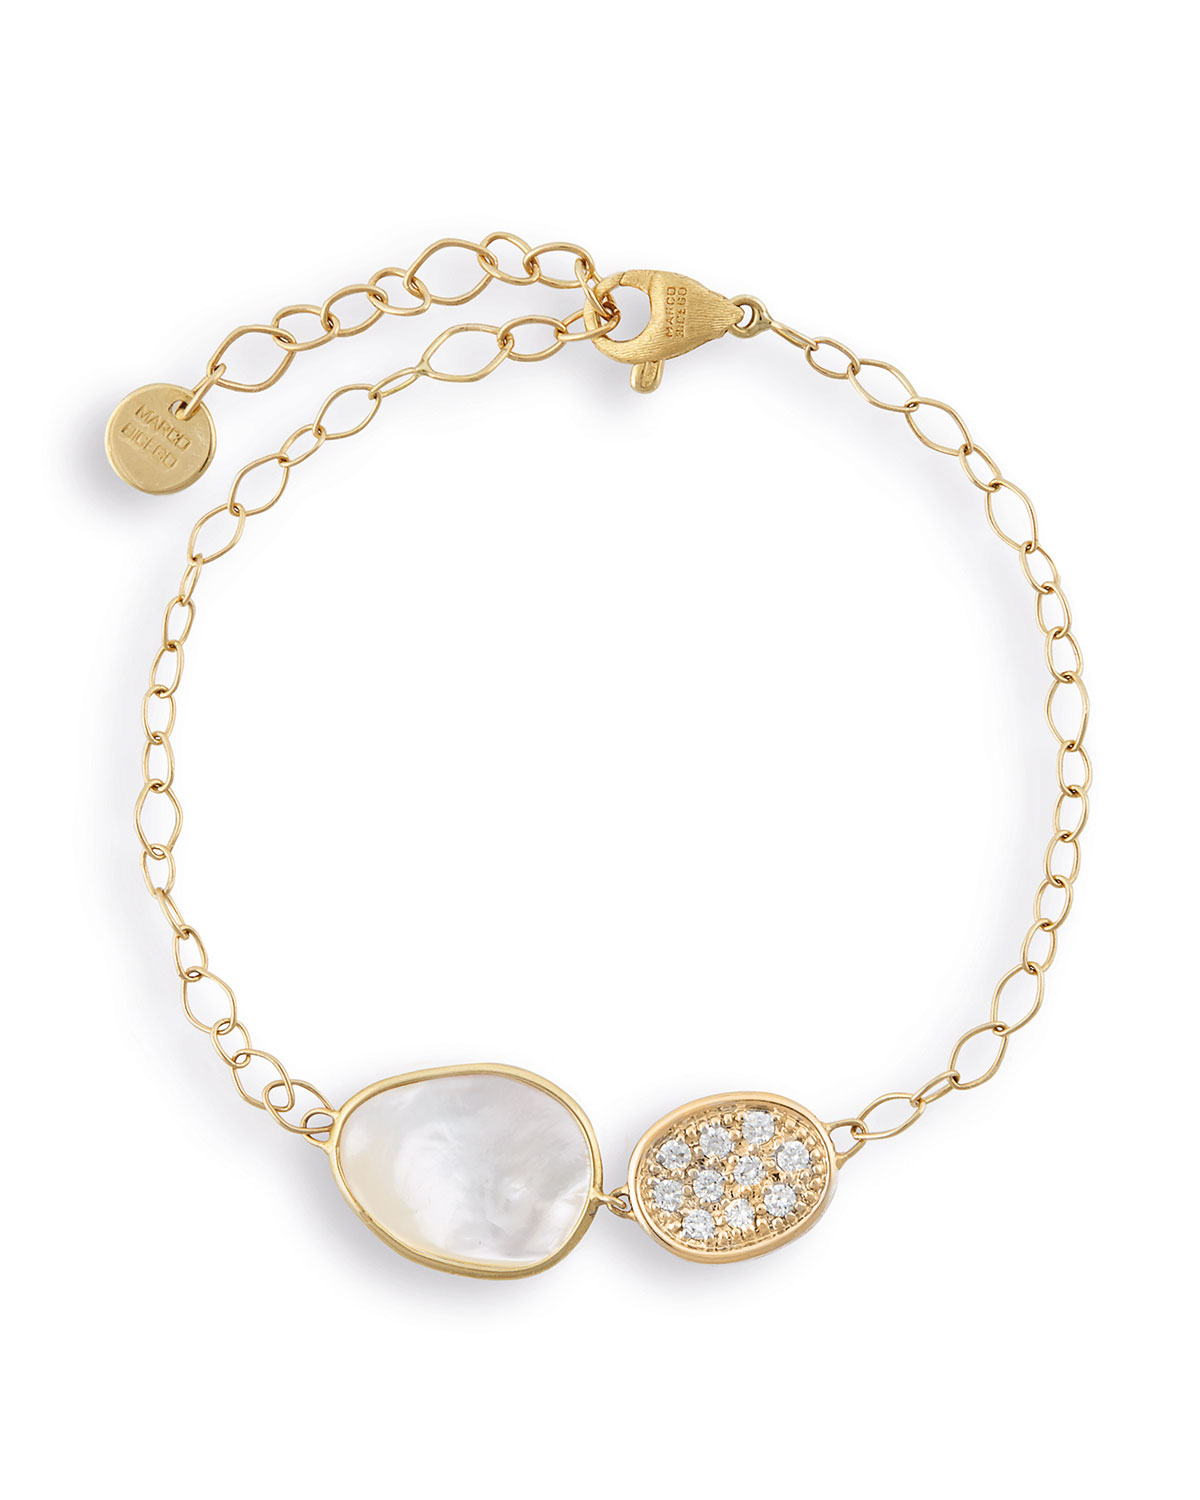 MARCO BICEGO LUNARIA GOLD TWO-PENDANT BRACELET WITH WHITE MOTHER-OF-PEARL & DIAMONDS